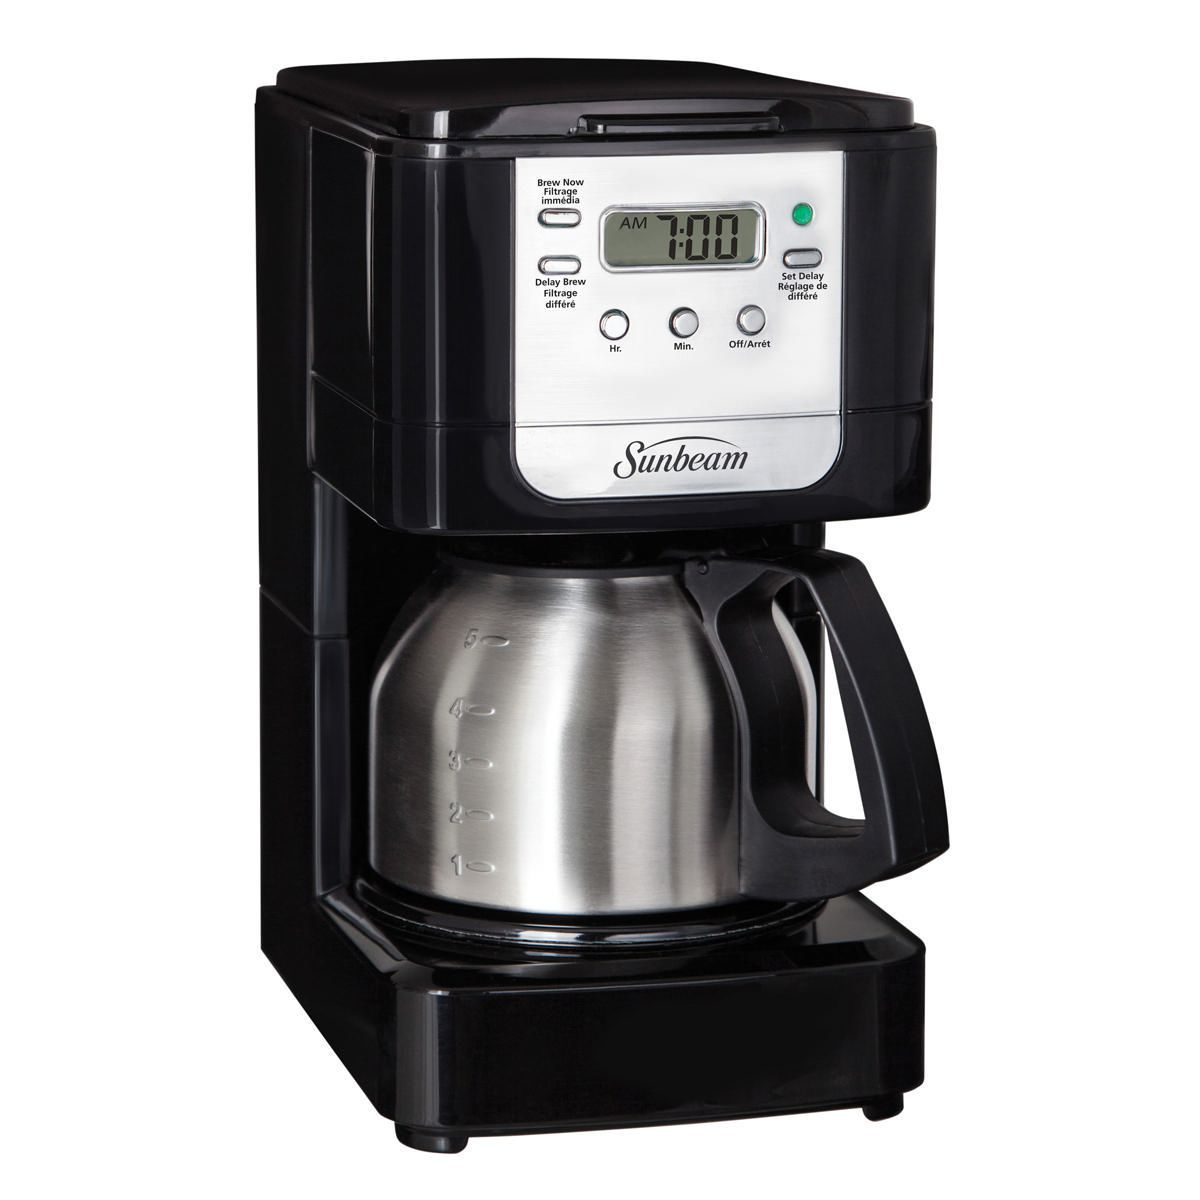 Sunbeam 5 Cup Programmable Coffeemaker With Stainless Steel Carafe